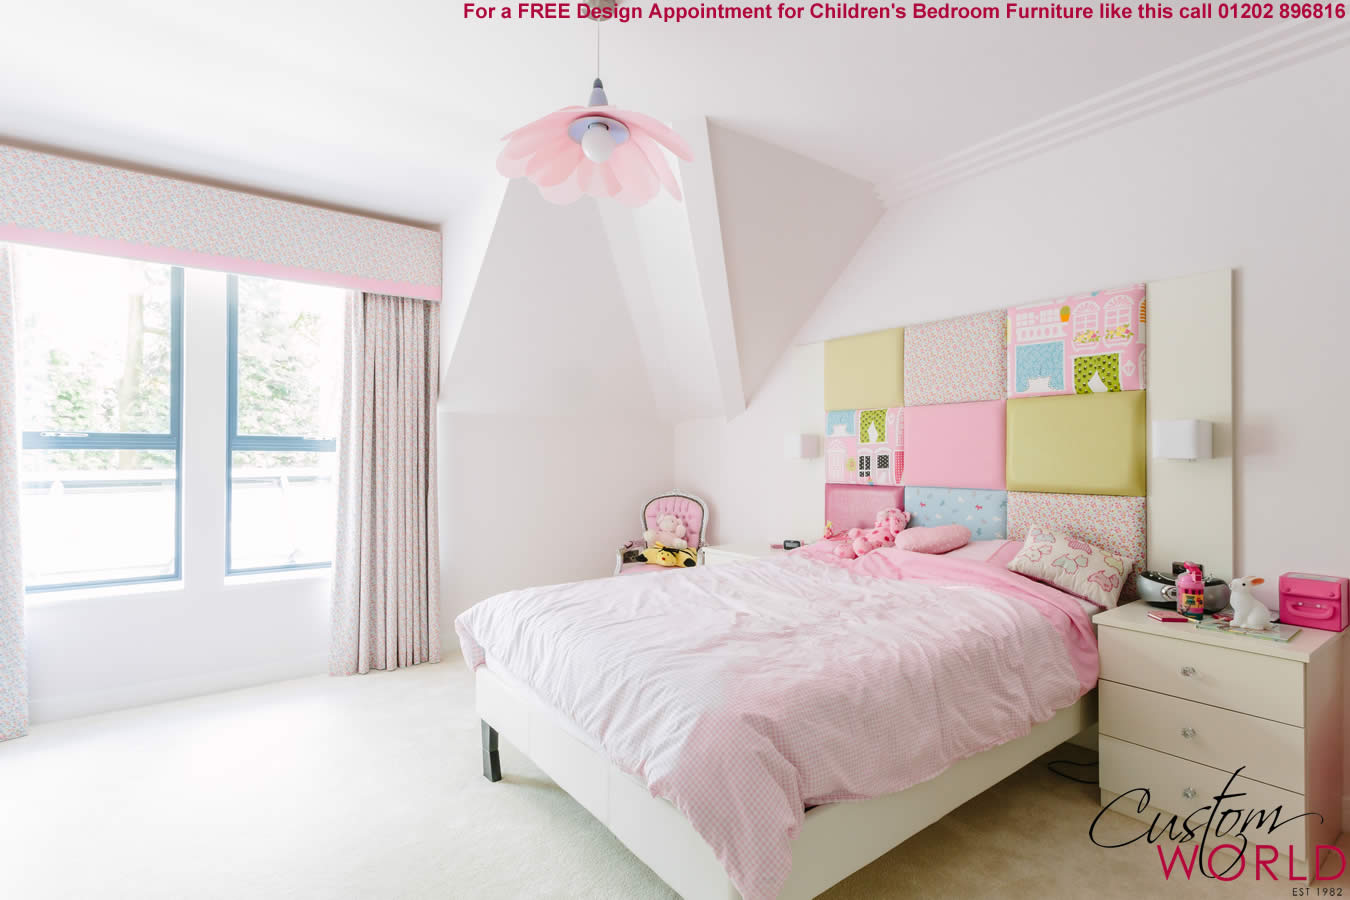 Childrens cabin beds fitted kids bedroom furniture all bespoke - Children bedrooms ...